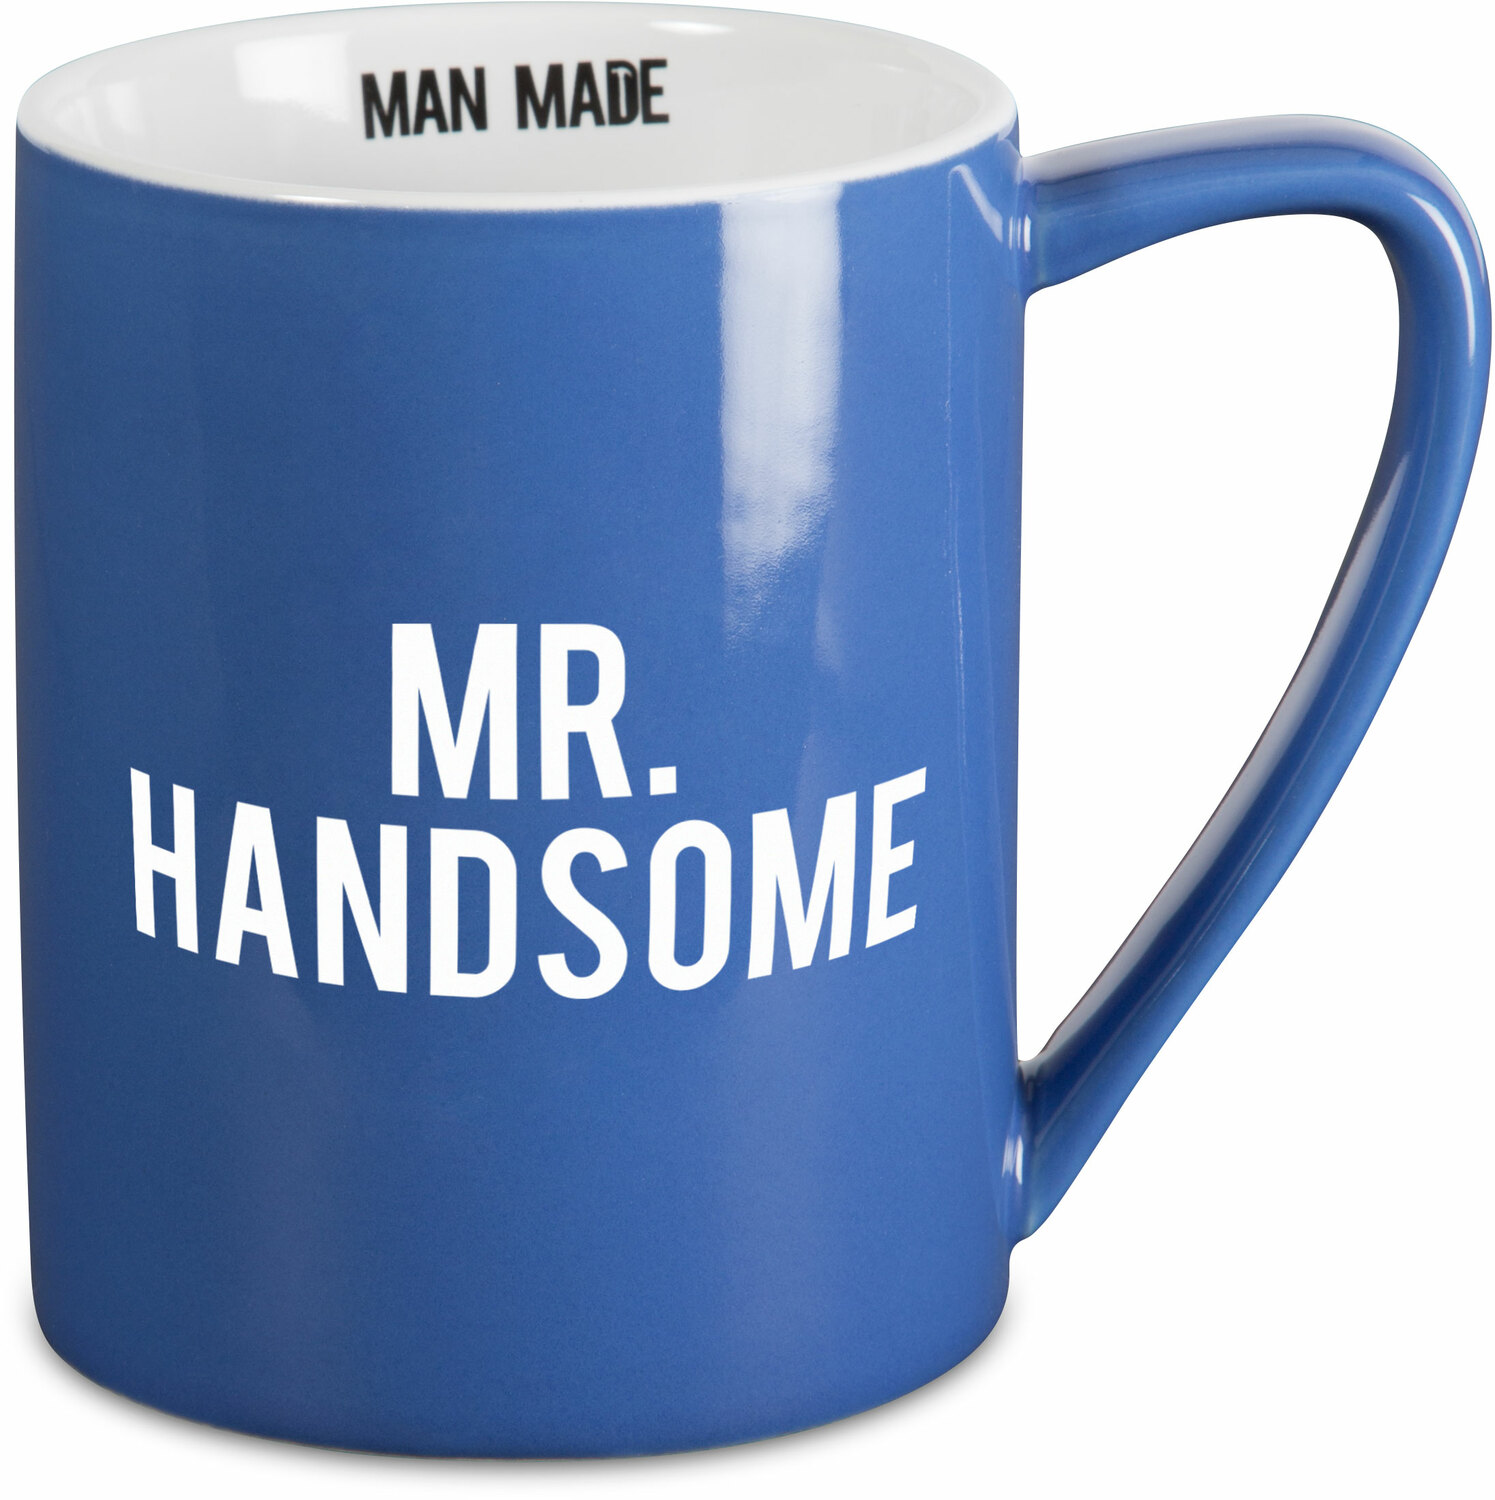 Mr. Handsome by Man Made - Mr. Handsome - 18 oz Mug